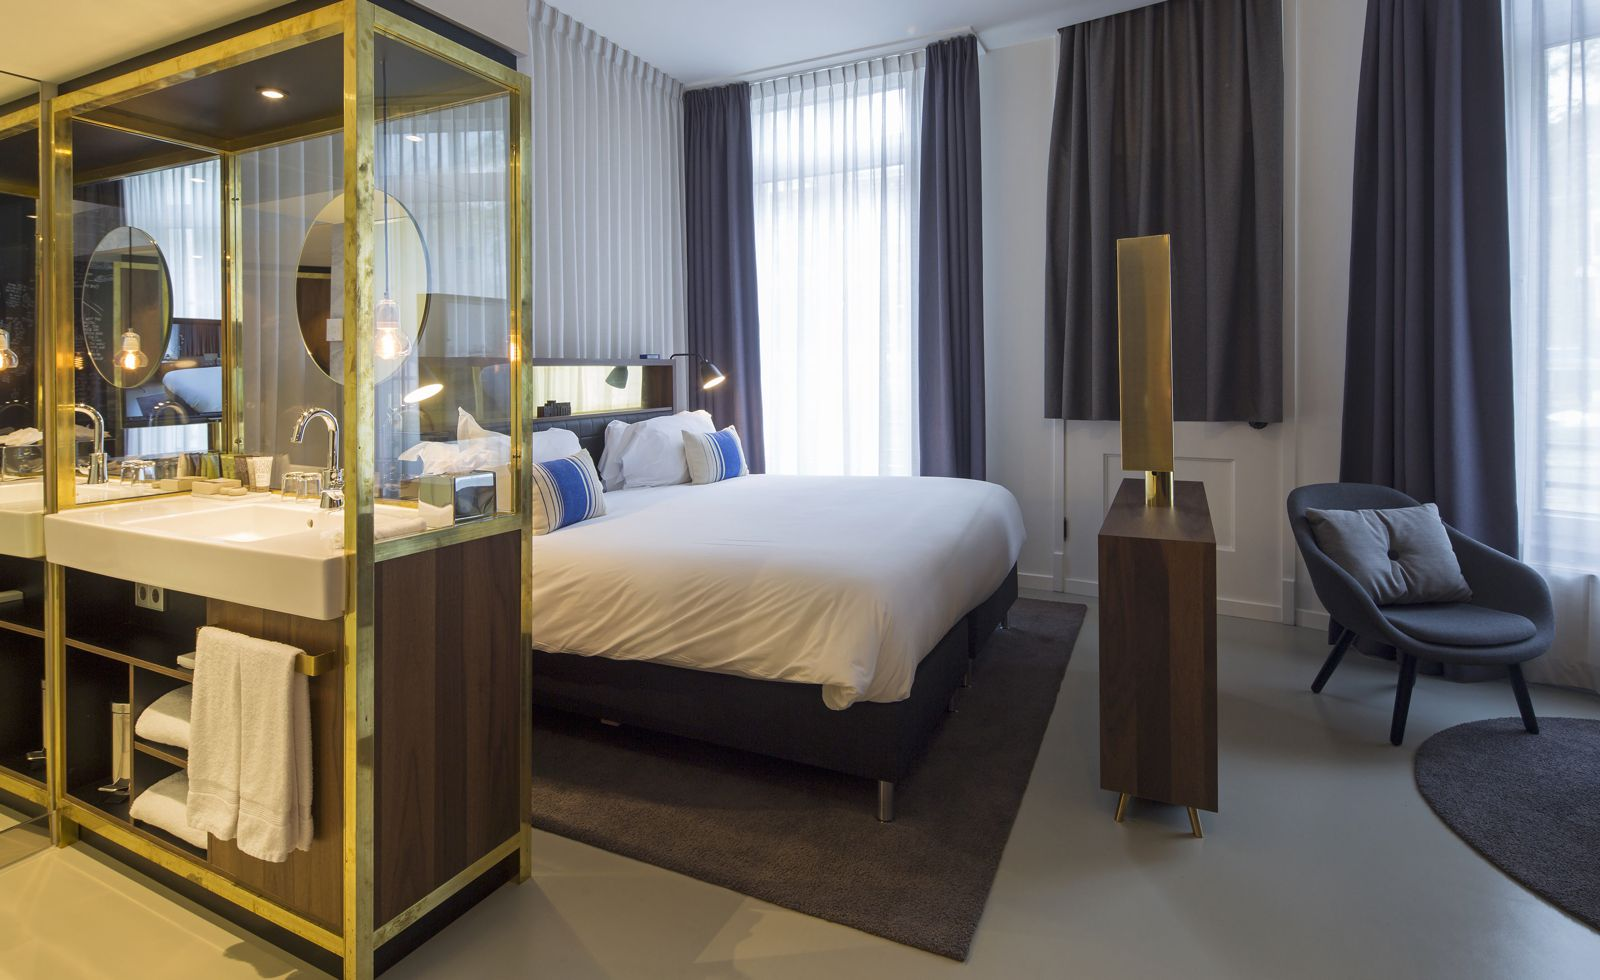 9 Unique And Cool Hotels To Stay At In Amsterdam (2)